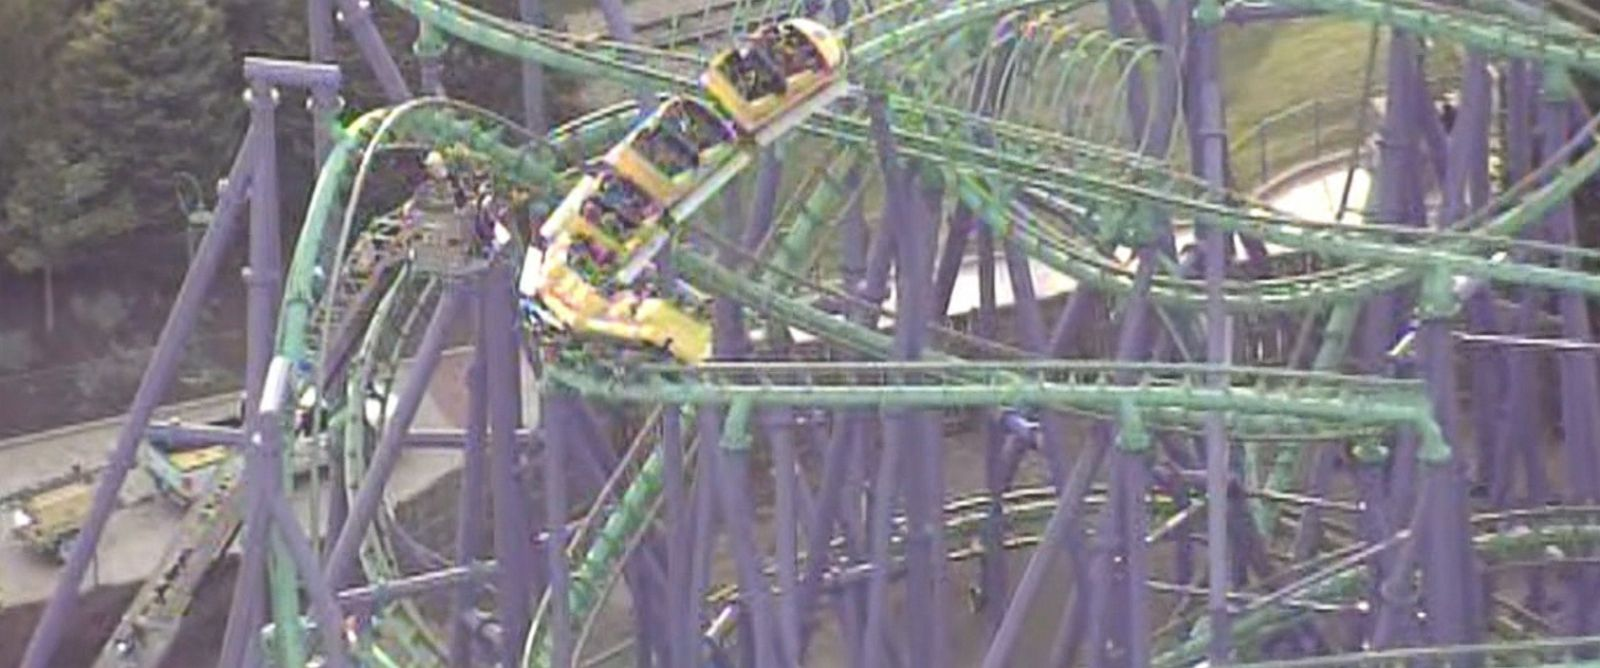 PHOTO: First responders rescued 24 people stuck on the the Jokers Jinx roller coaster at Six Flags America in Bowie, Maryland.